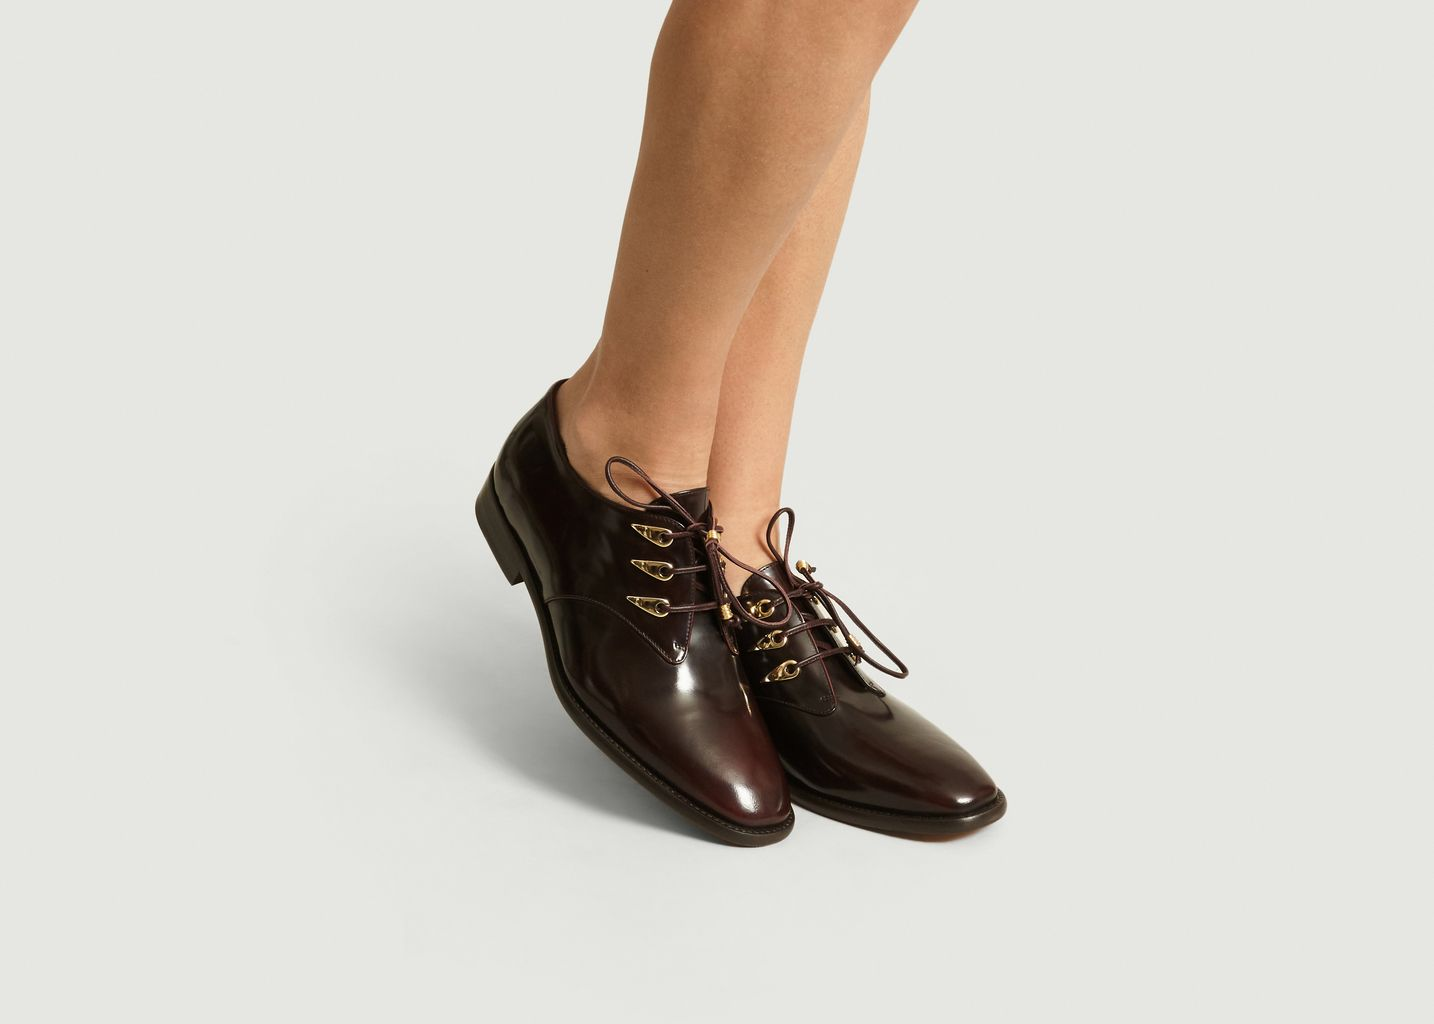 Derbies Shoemagic - Roseanna